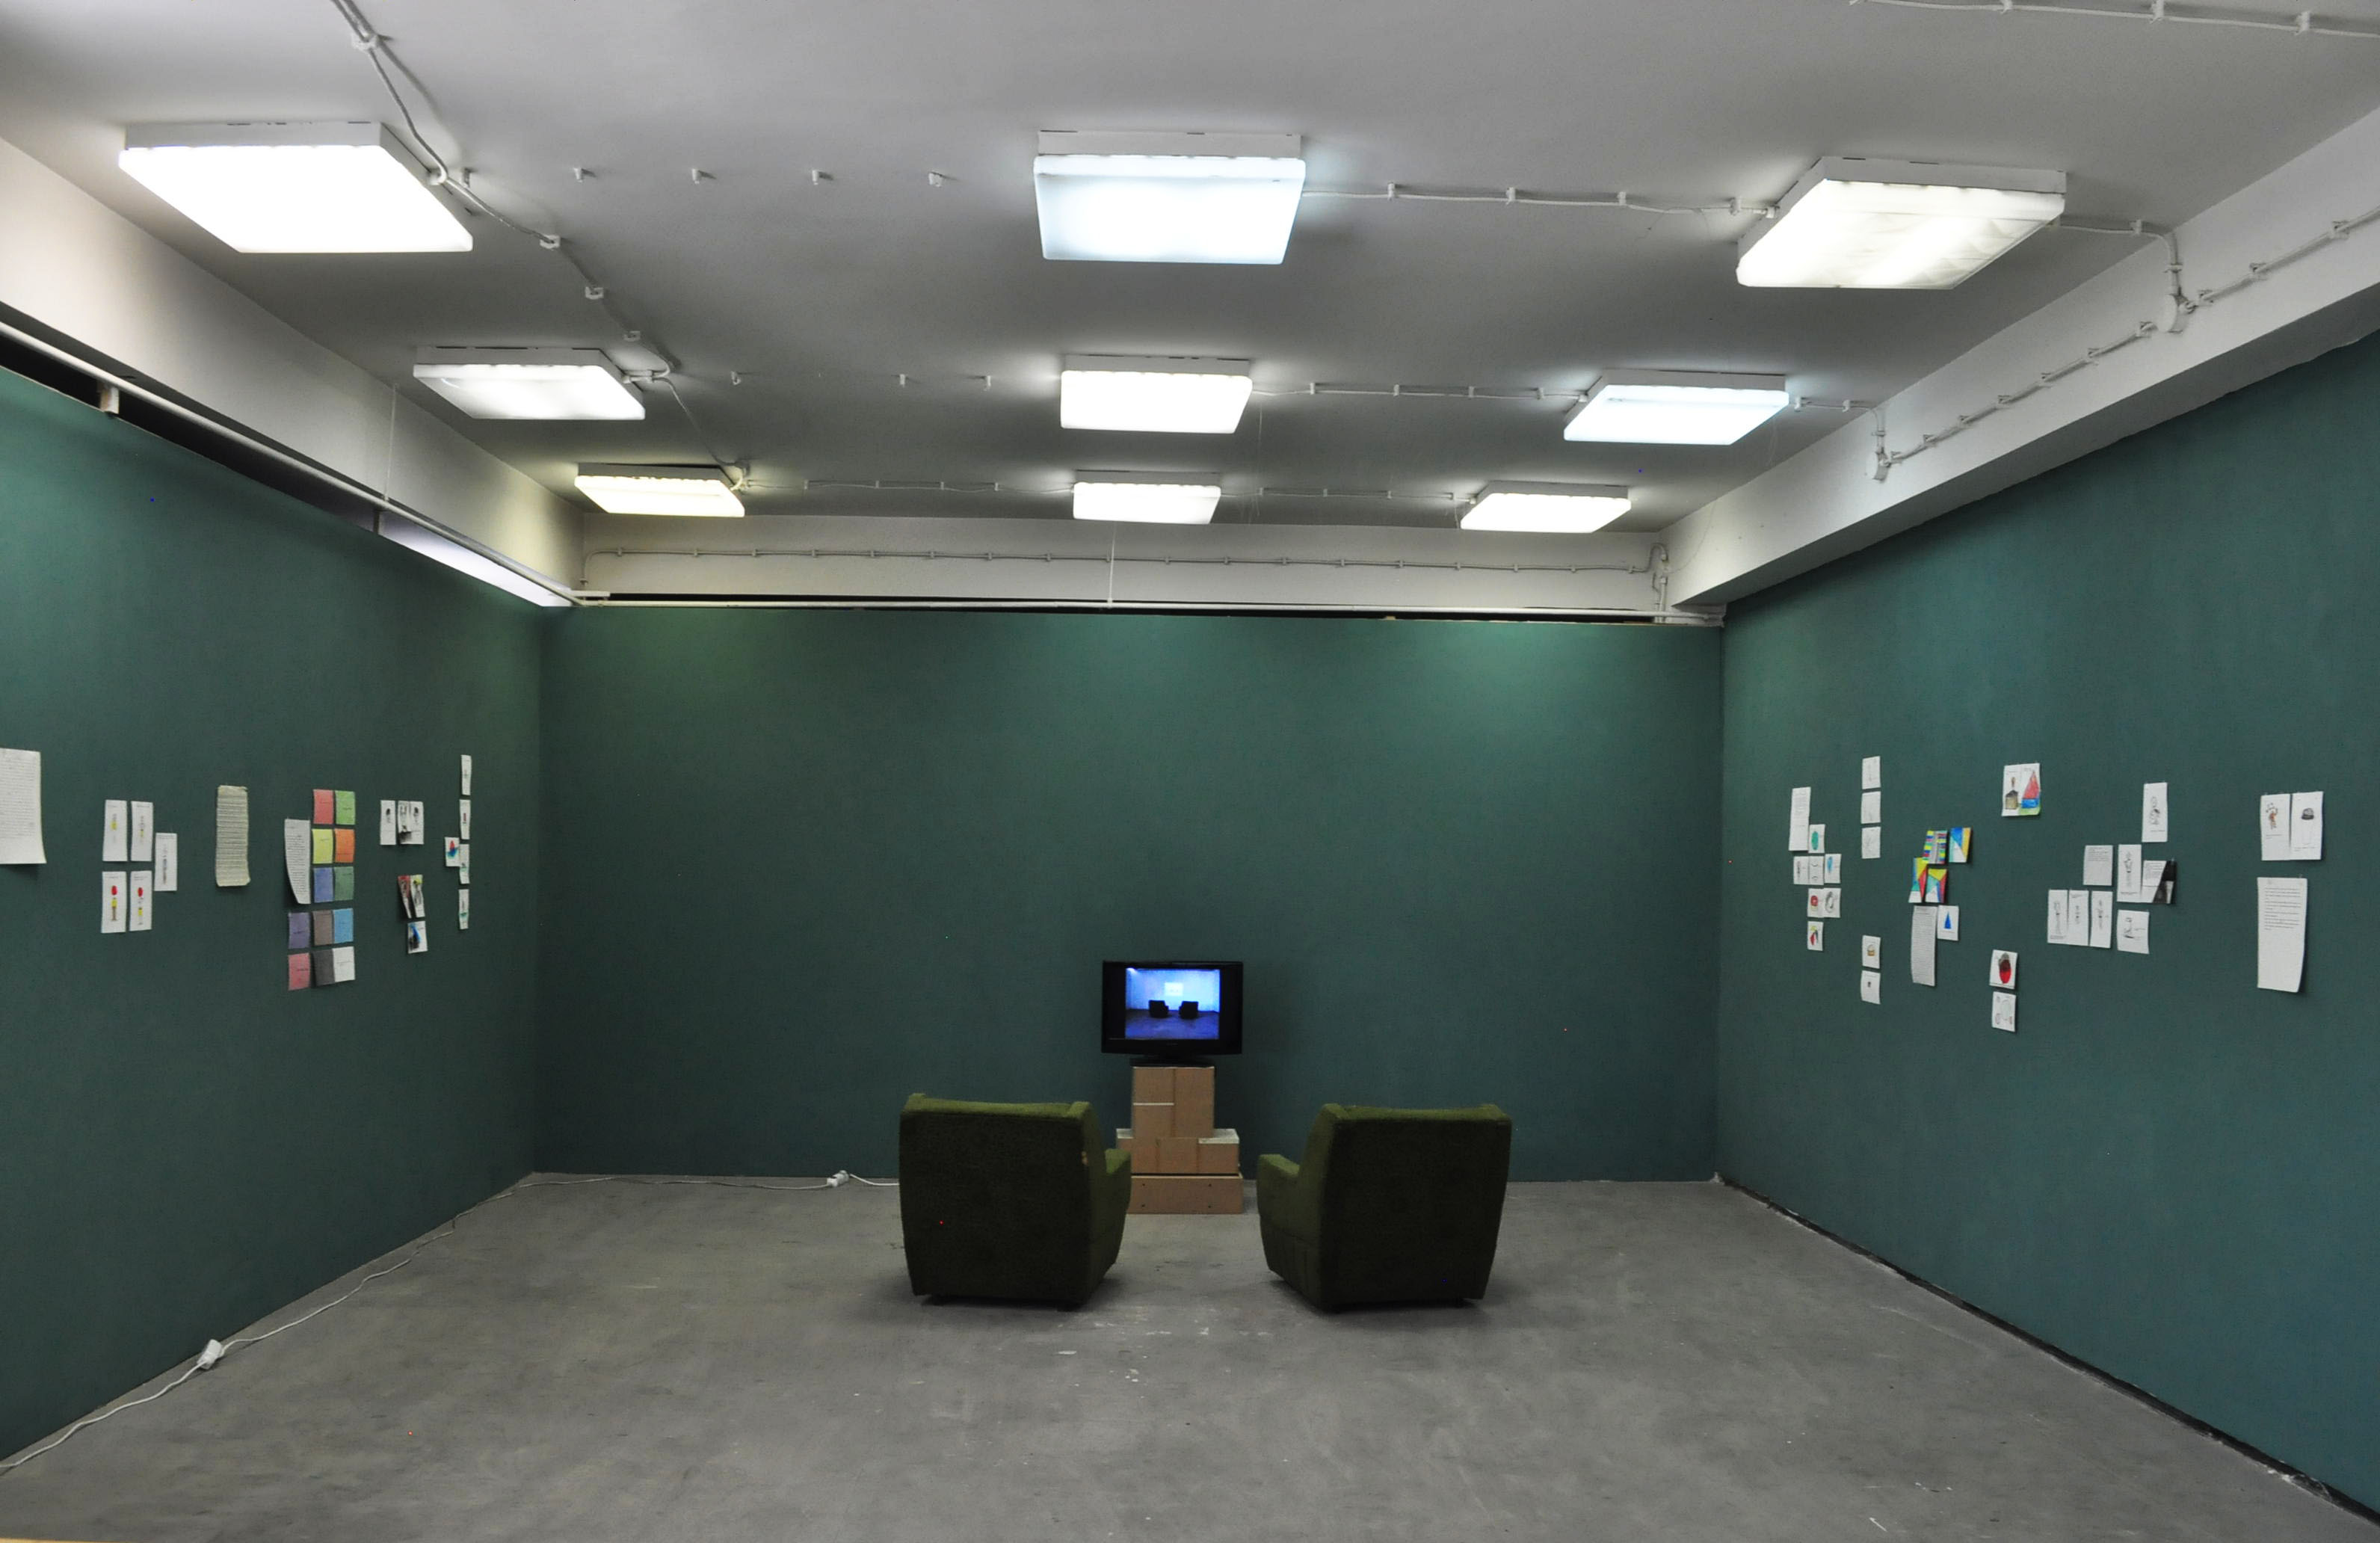 Andrea Coyotzi Borja (exhibition view, 2013)